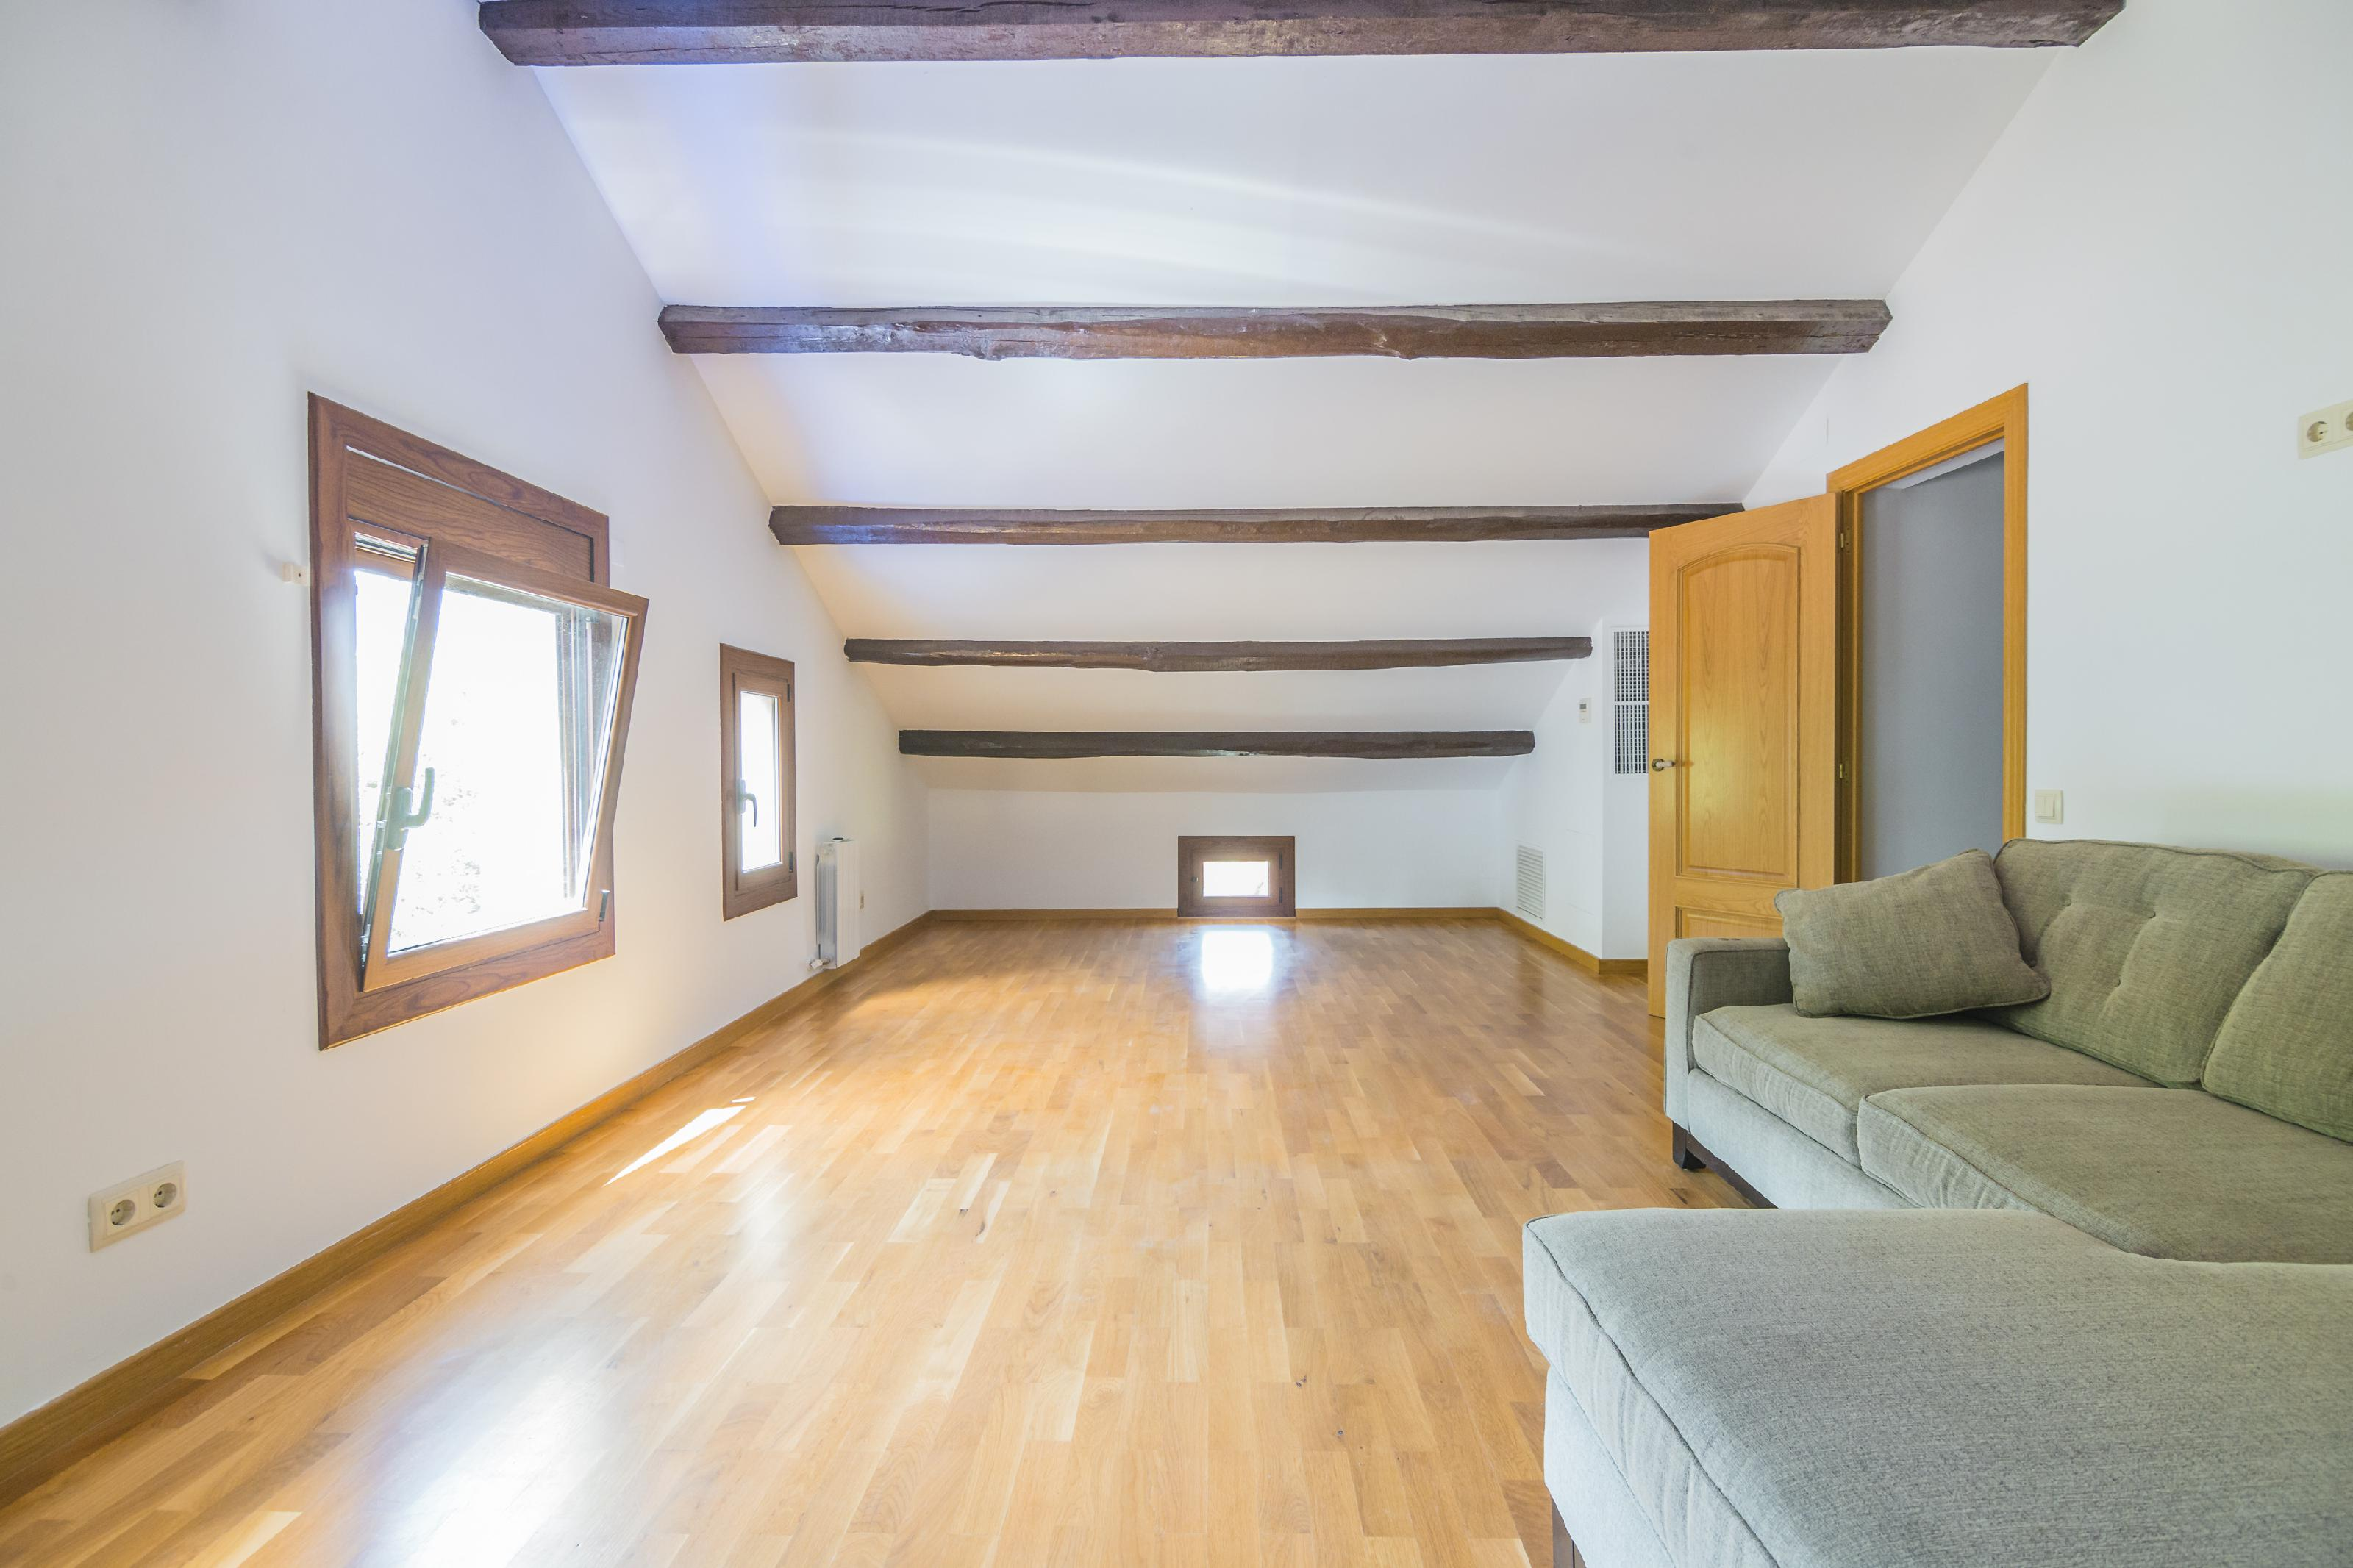 223076 House Isolated for sale in Sarrià-Sant Gervasi, Sarrià 17